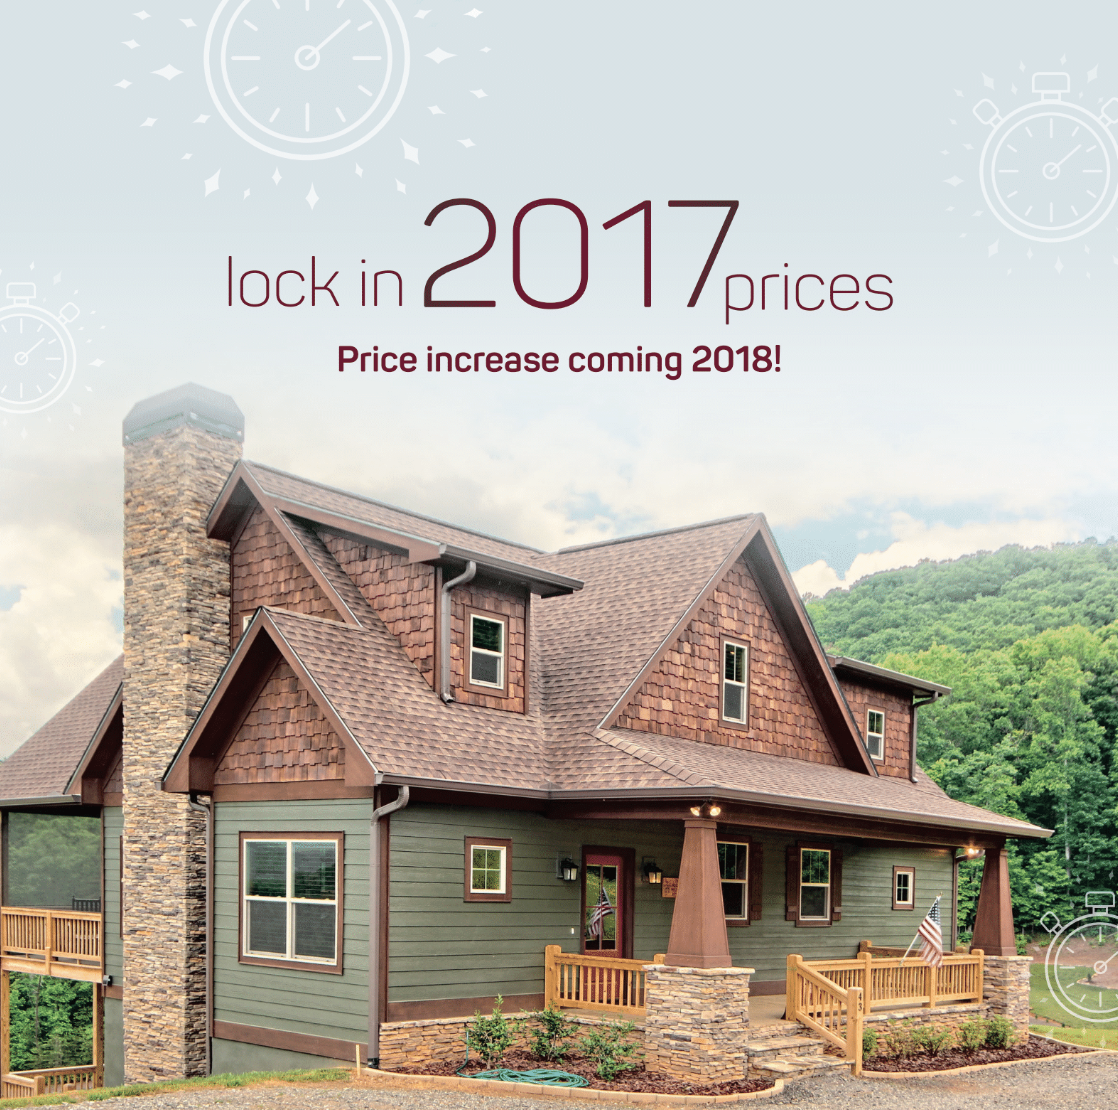 Food. Gas. Clothing. We In The Homebuilding Industry Are Facing Similar  Increases. The Prices For Lumber And Other Construction Materials ...